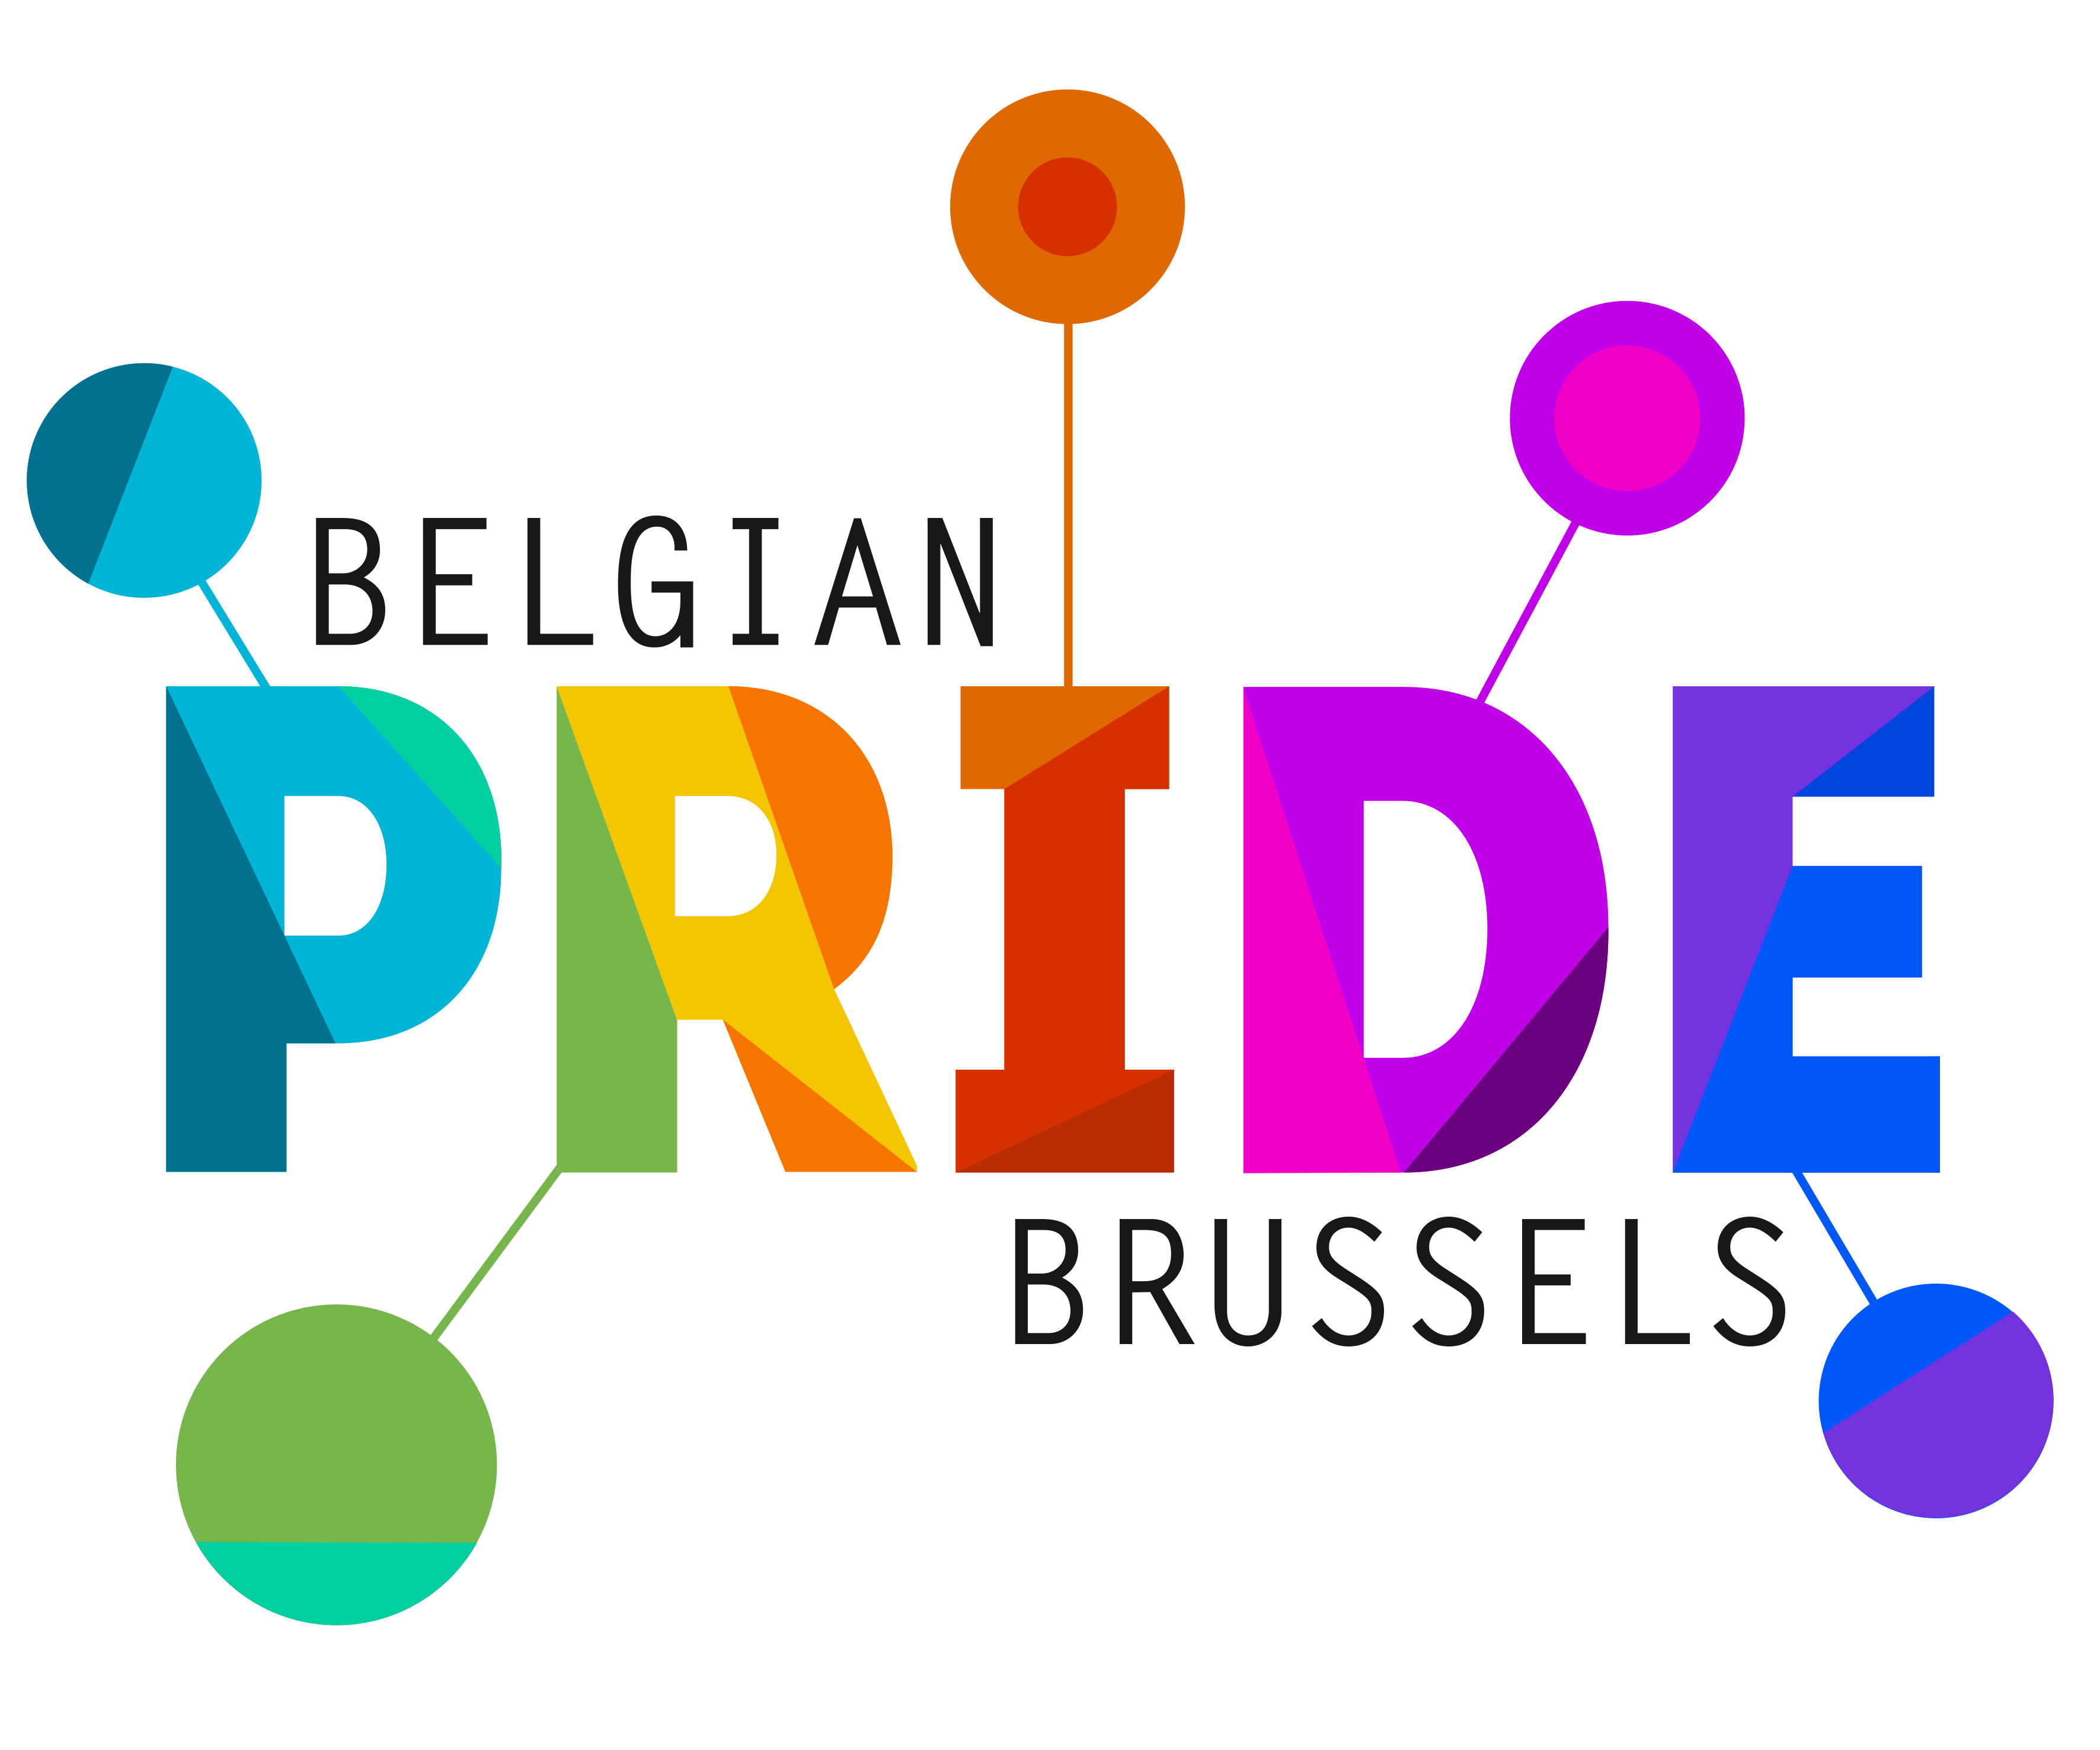 Belgian pride your local. Galaxy clipart mission to mars